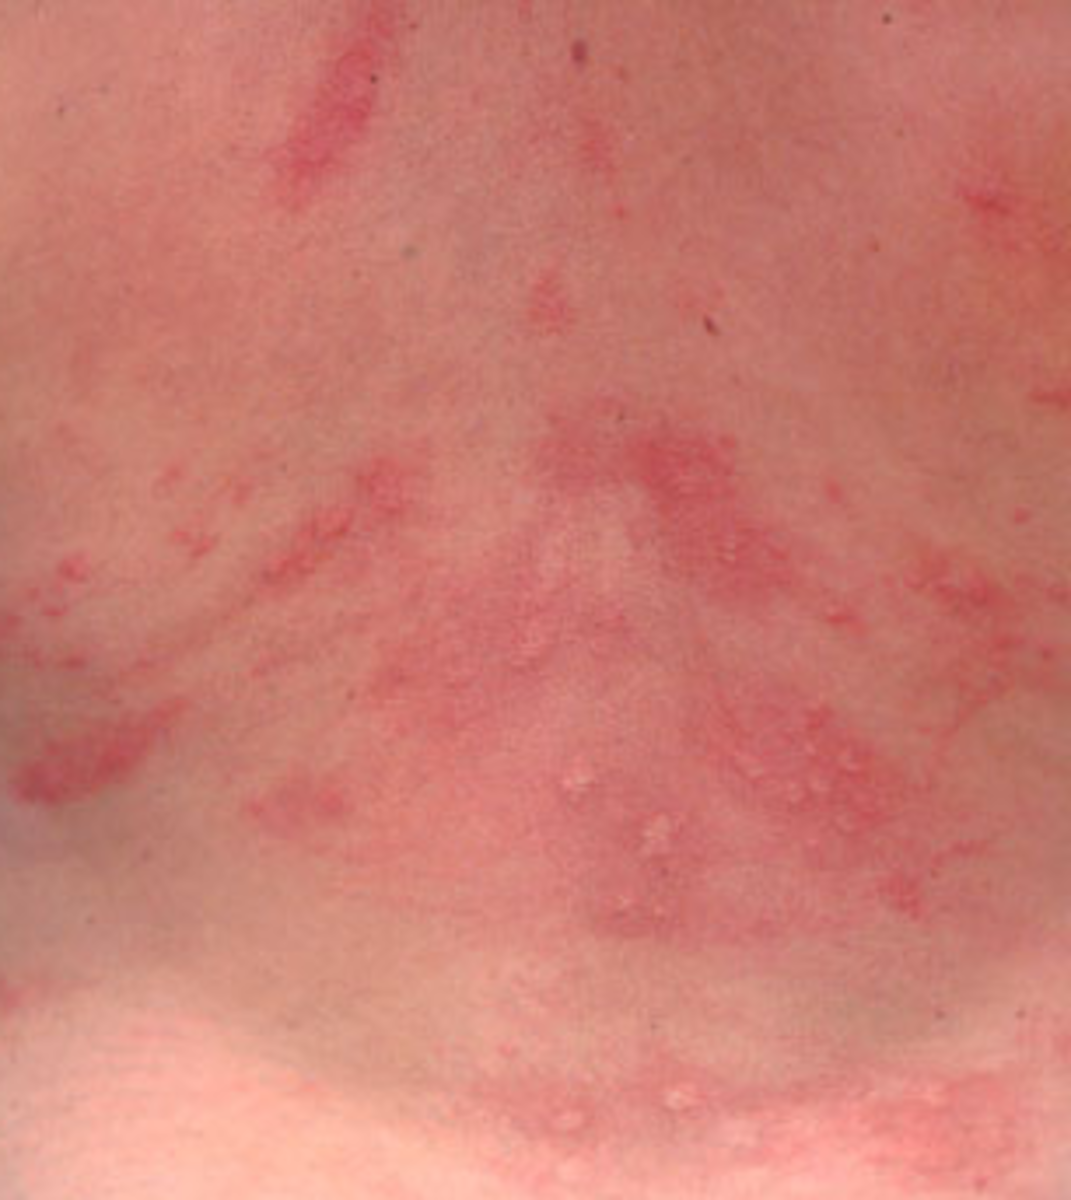 Itchy Rash on Back